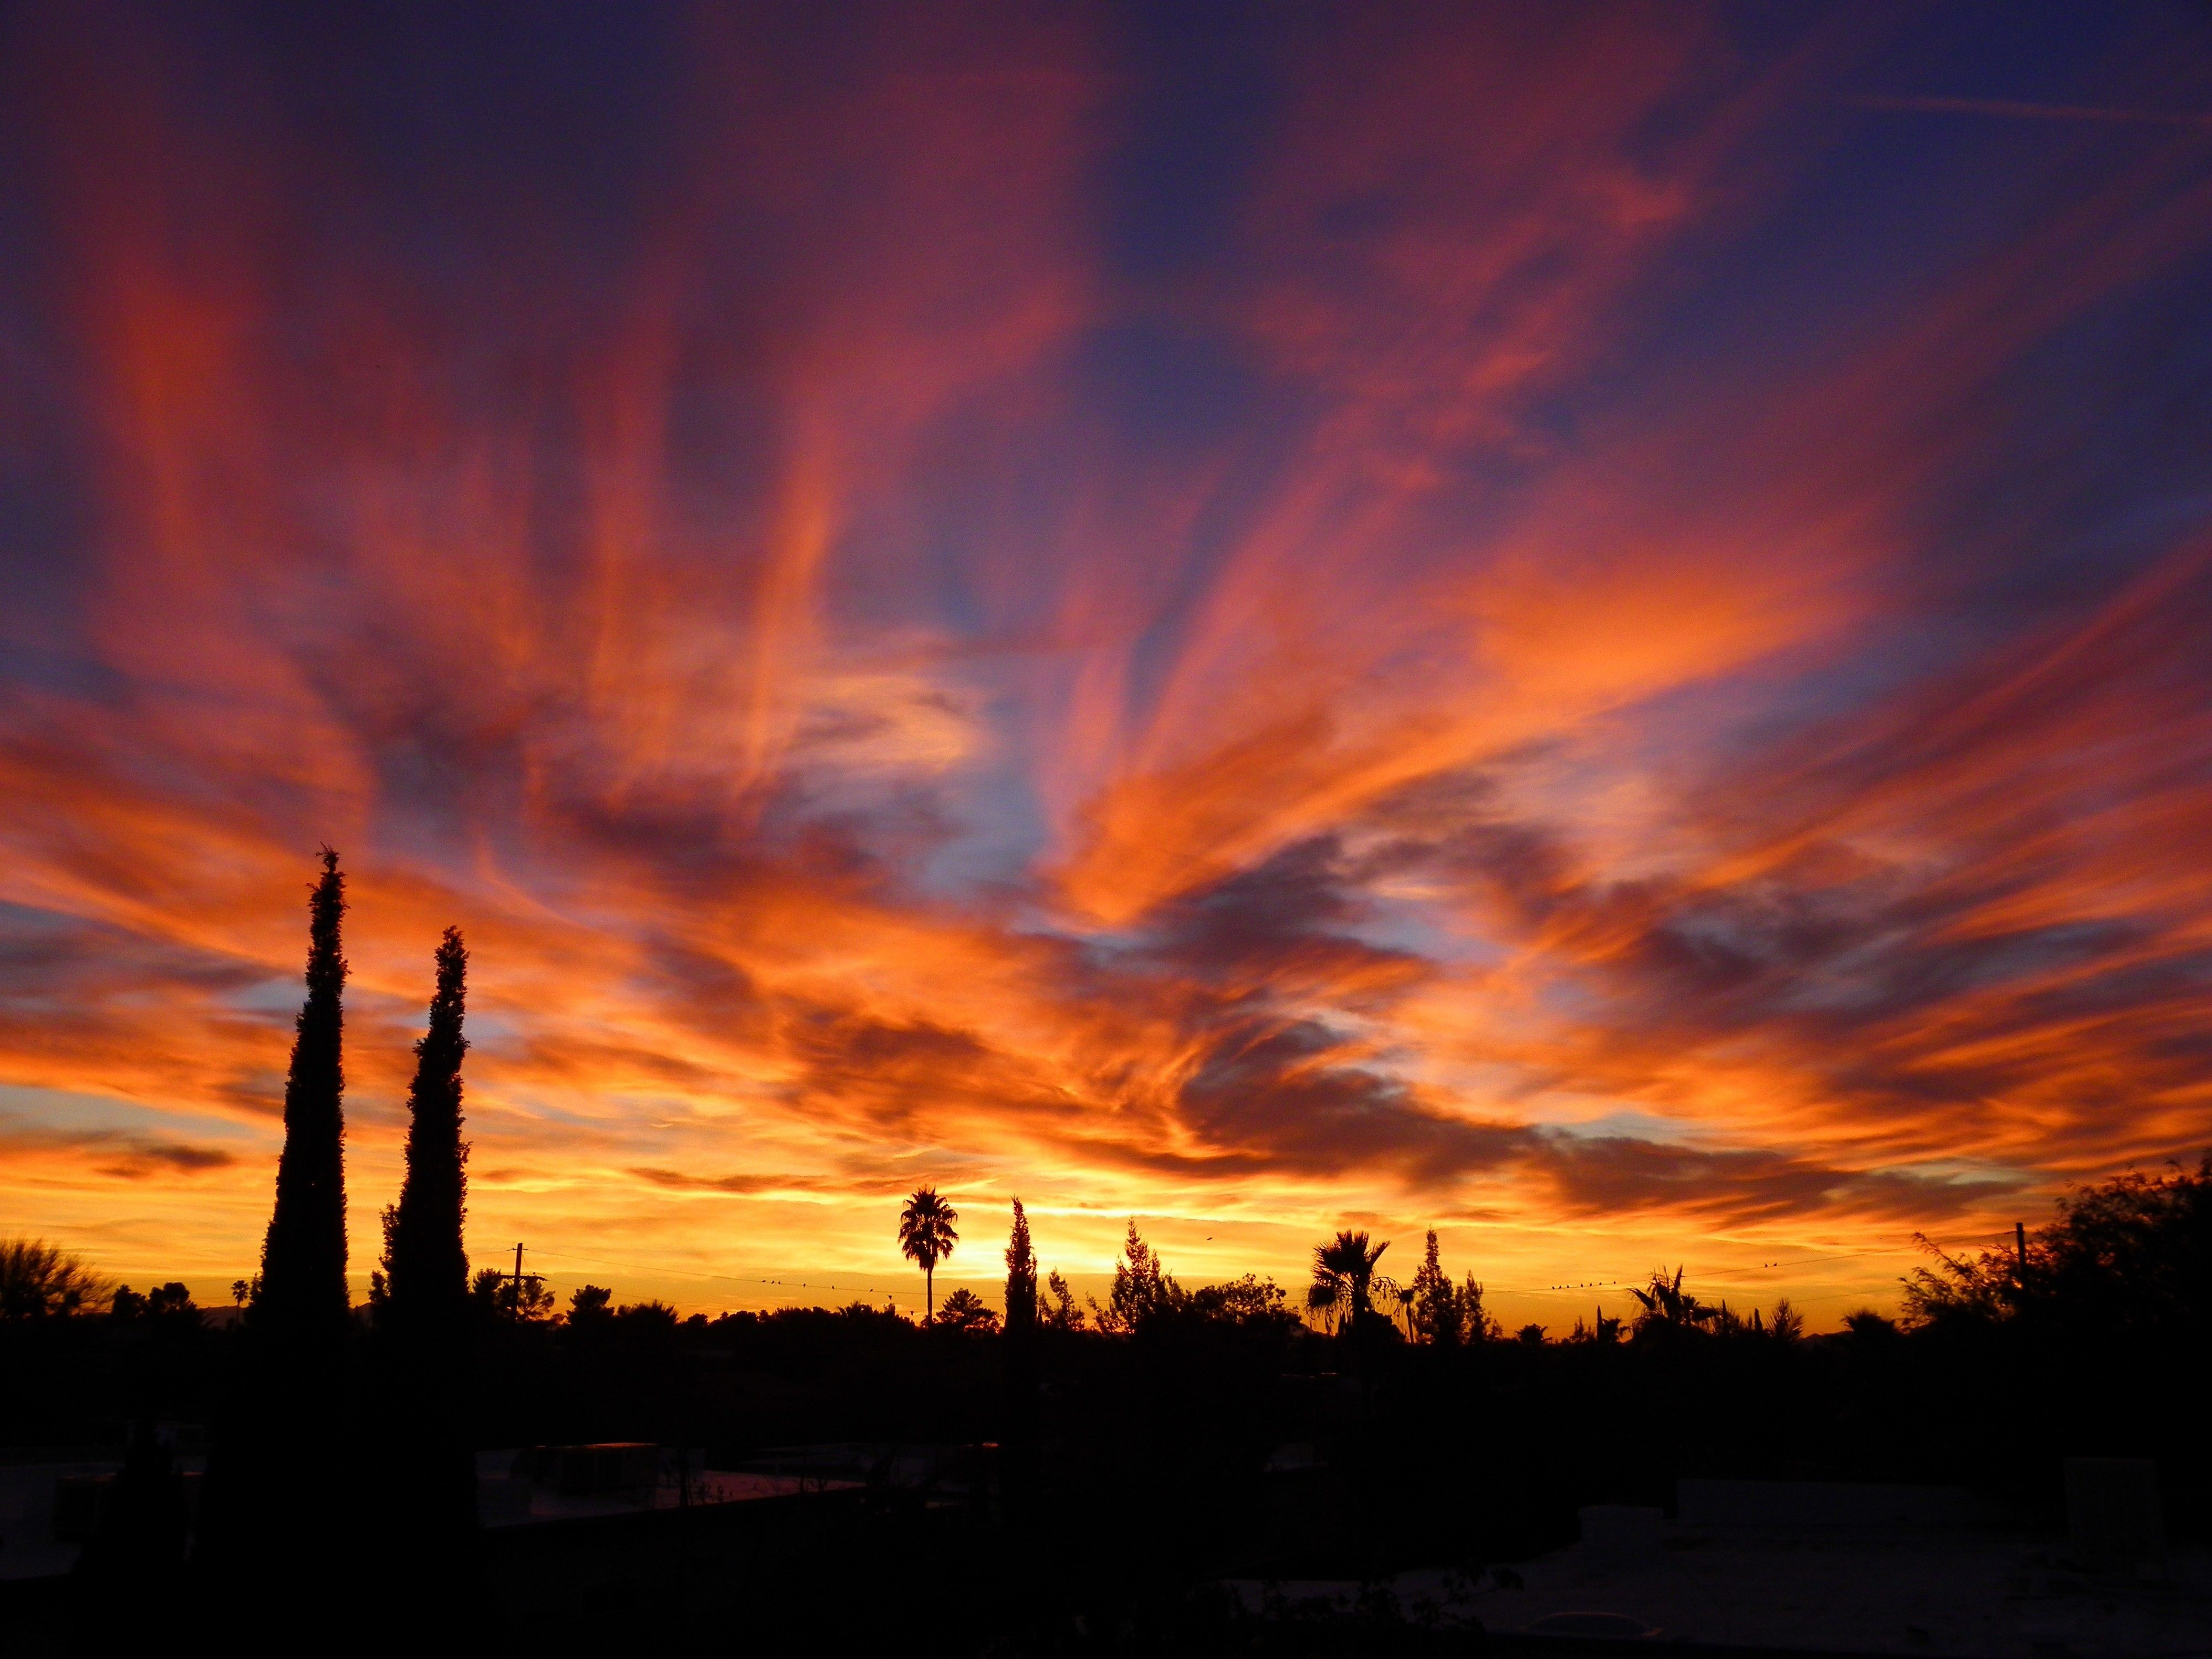 A sunset in Arizona turns clouds orange, yellow, and purple against a darkening blue sky.